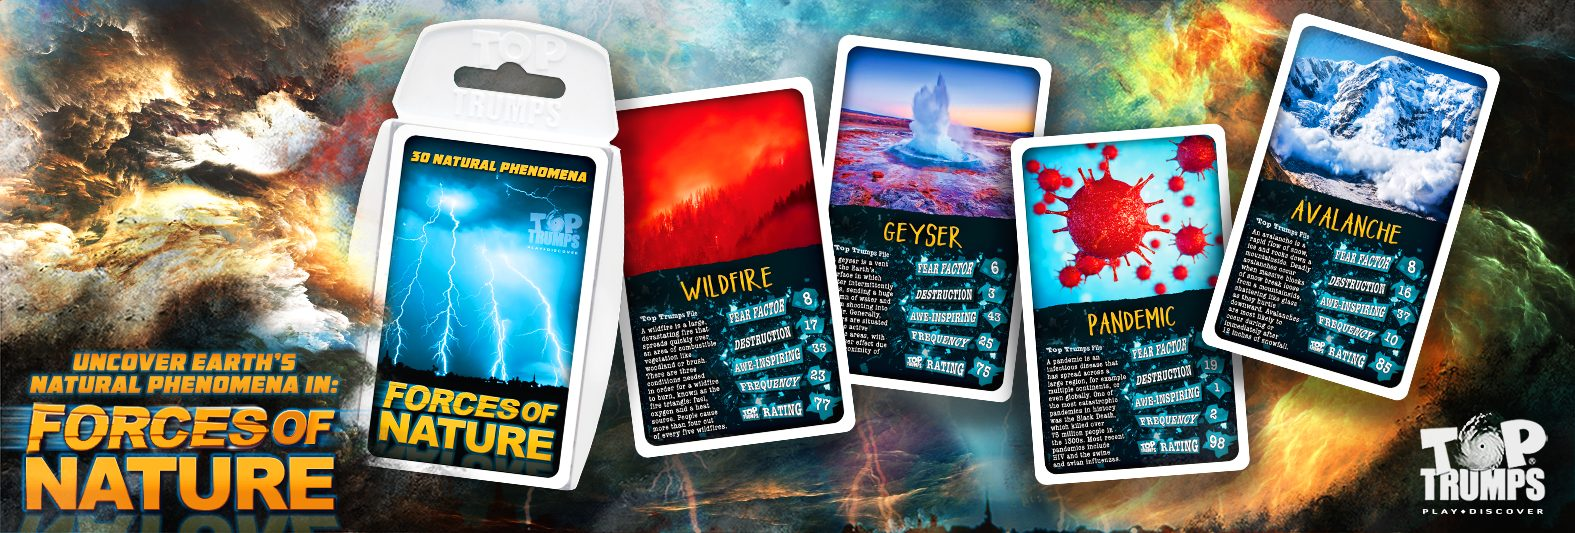 Forces of Nature Top Trumps